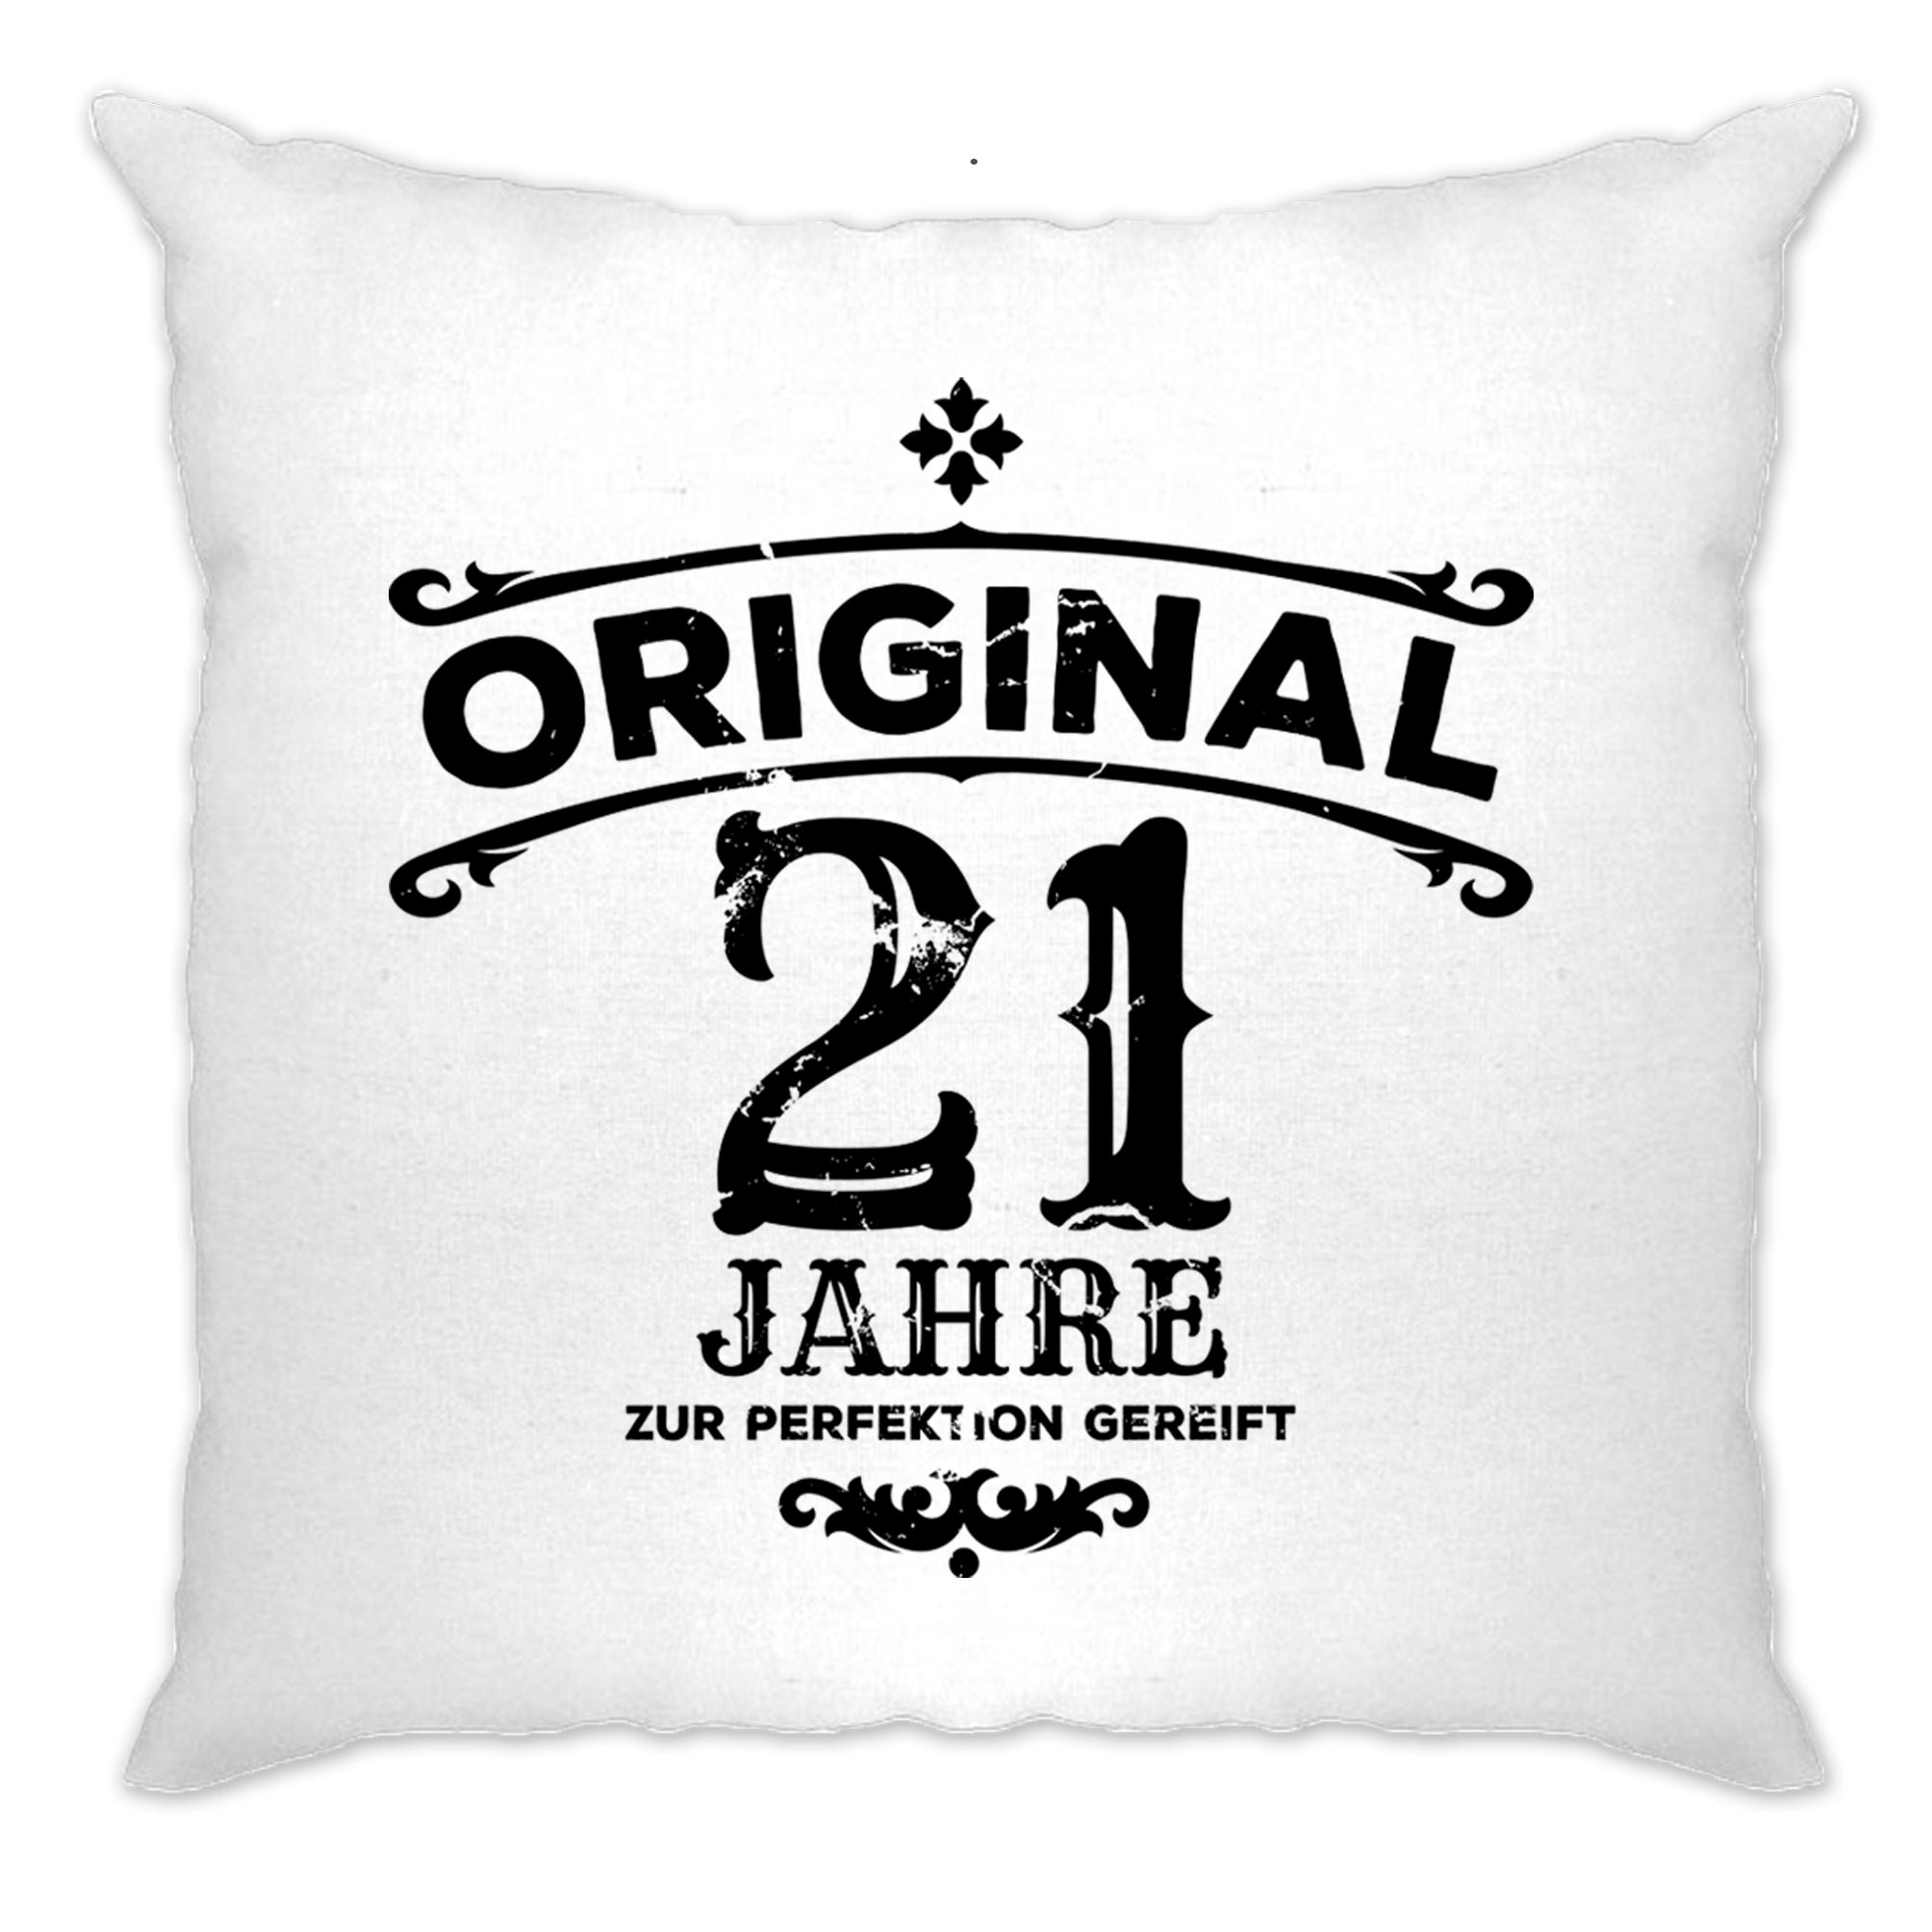 21st Birthday Cushion Cover Original Aged Years Twenty One